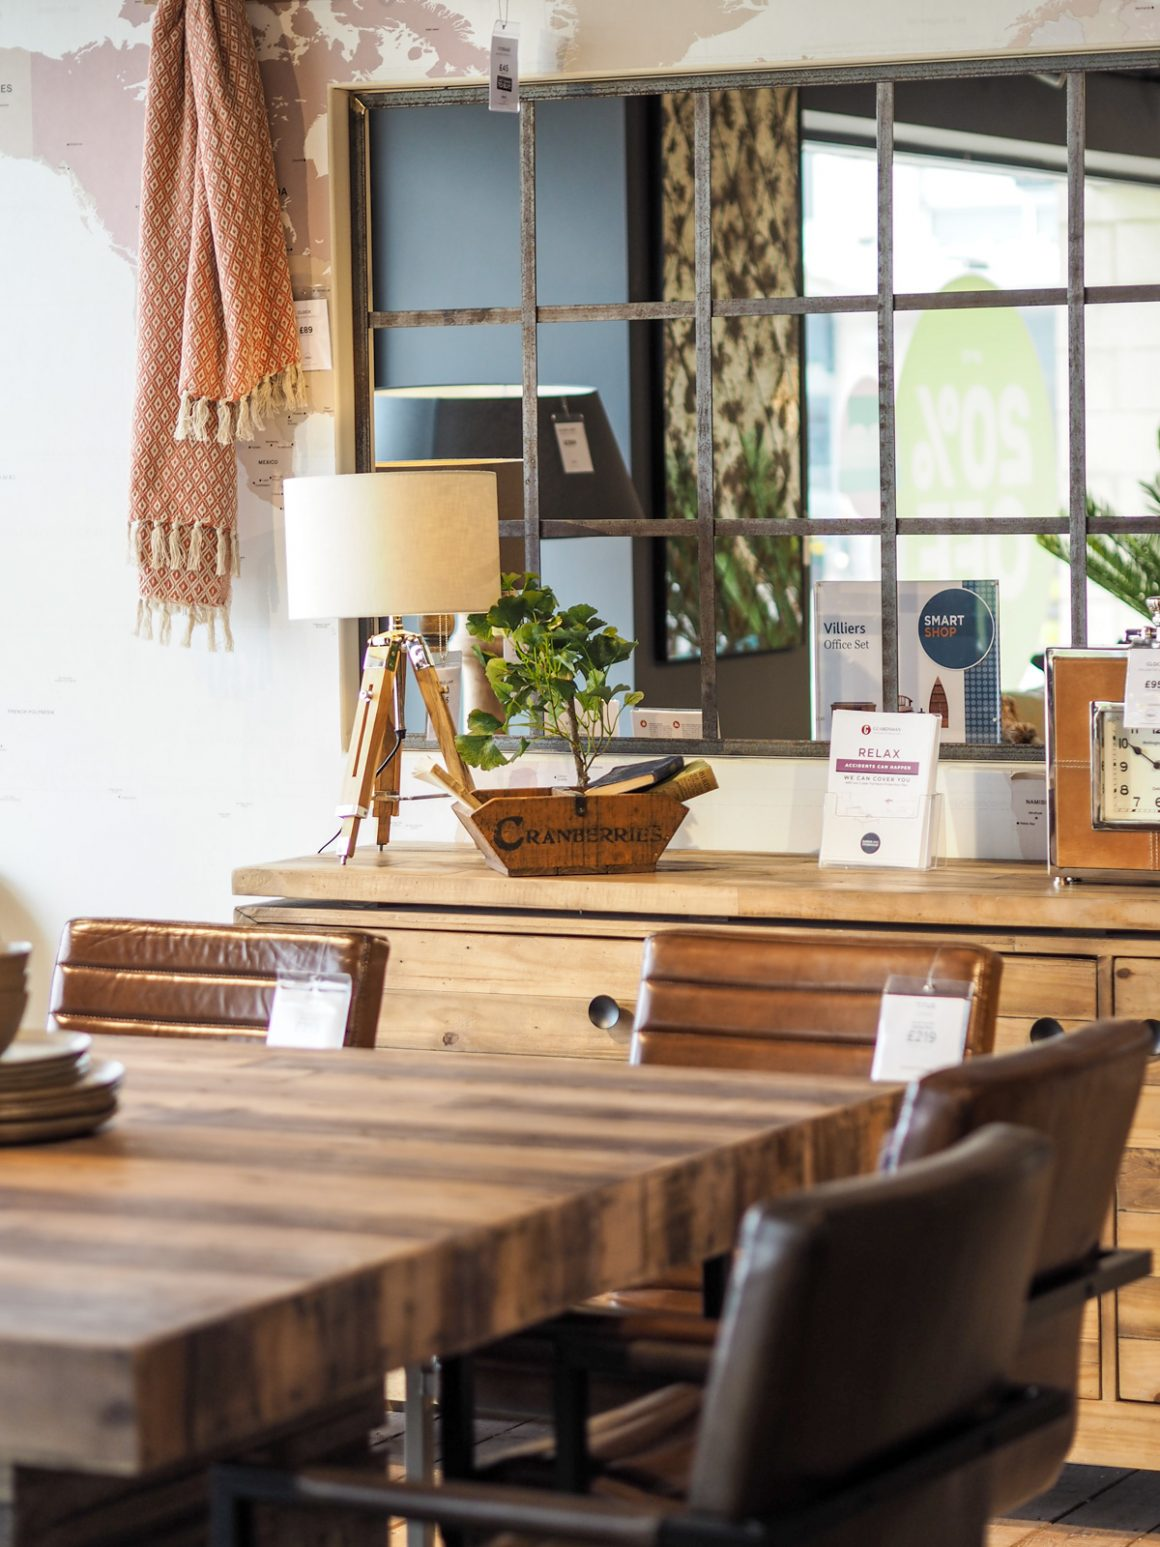 Industrial interior inspiration at Barker and Stonehouse in Leeds